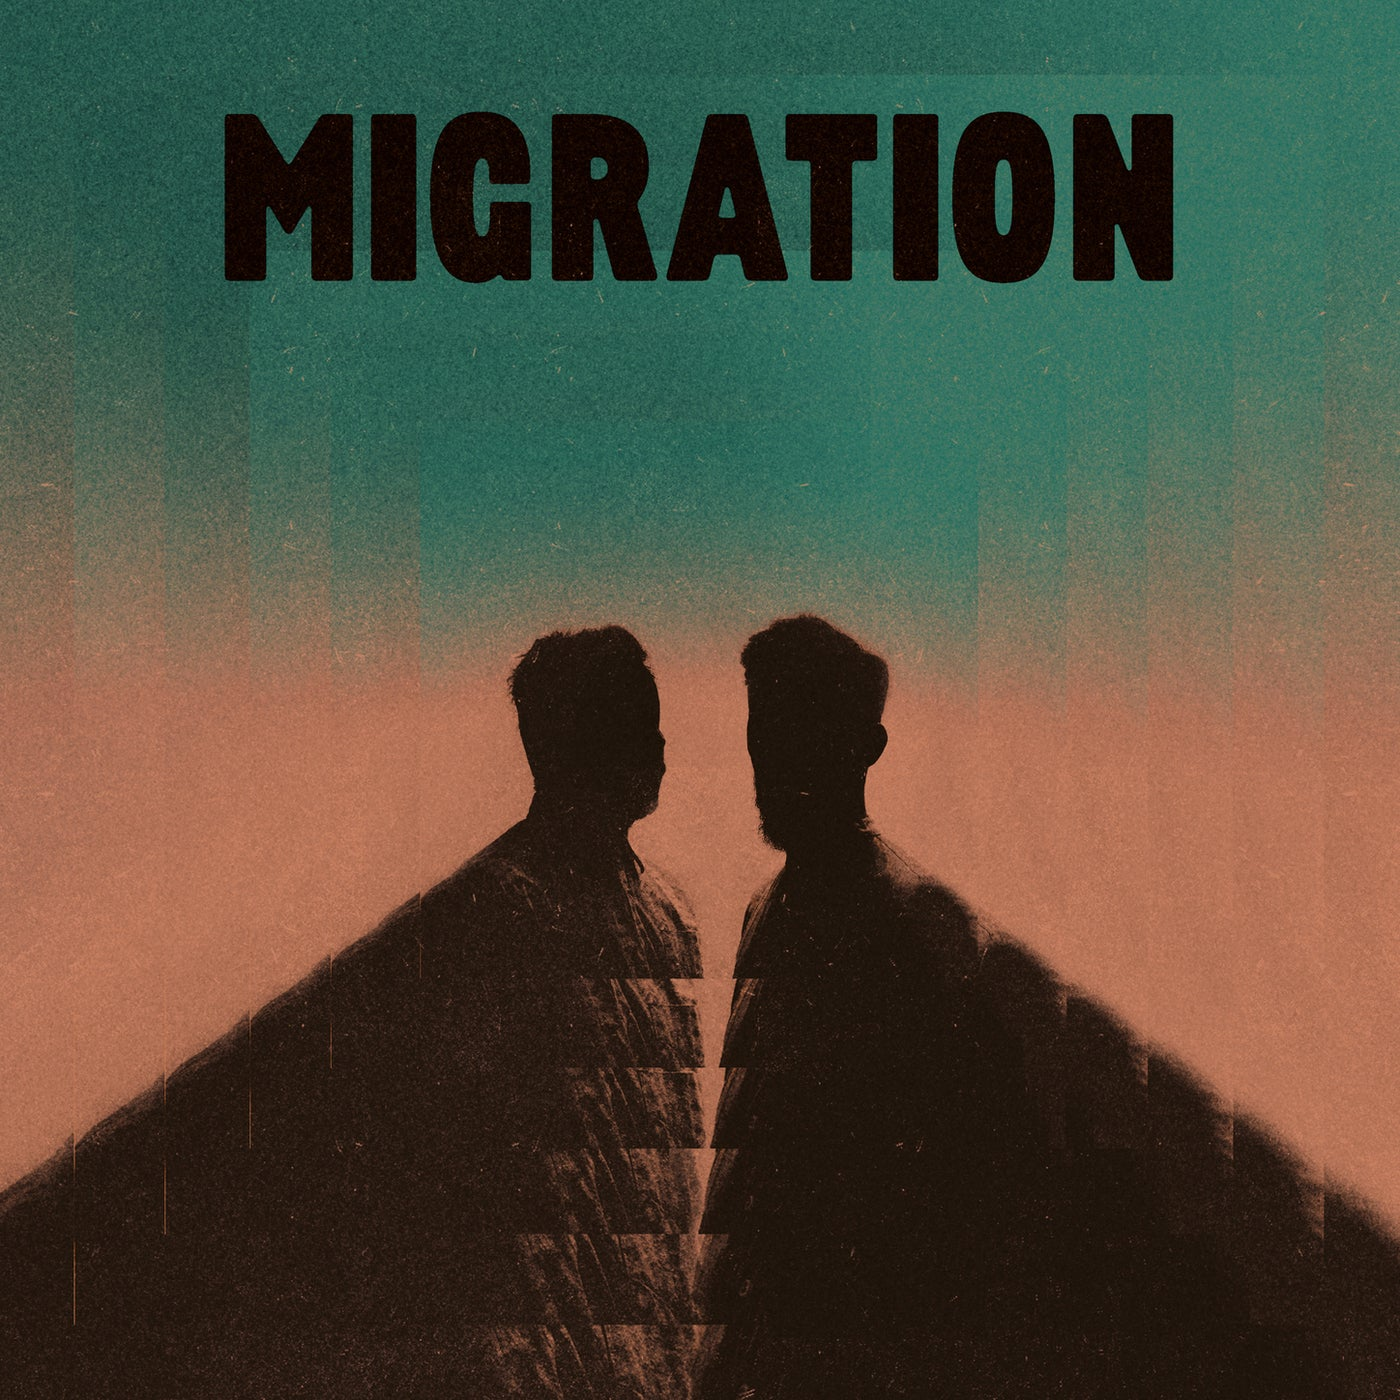 Download Migration on Electrobuzz